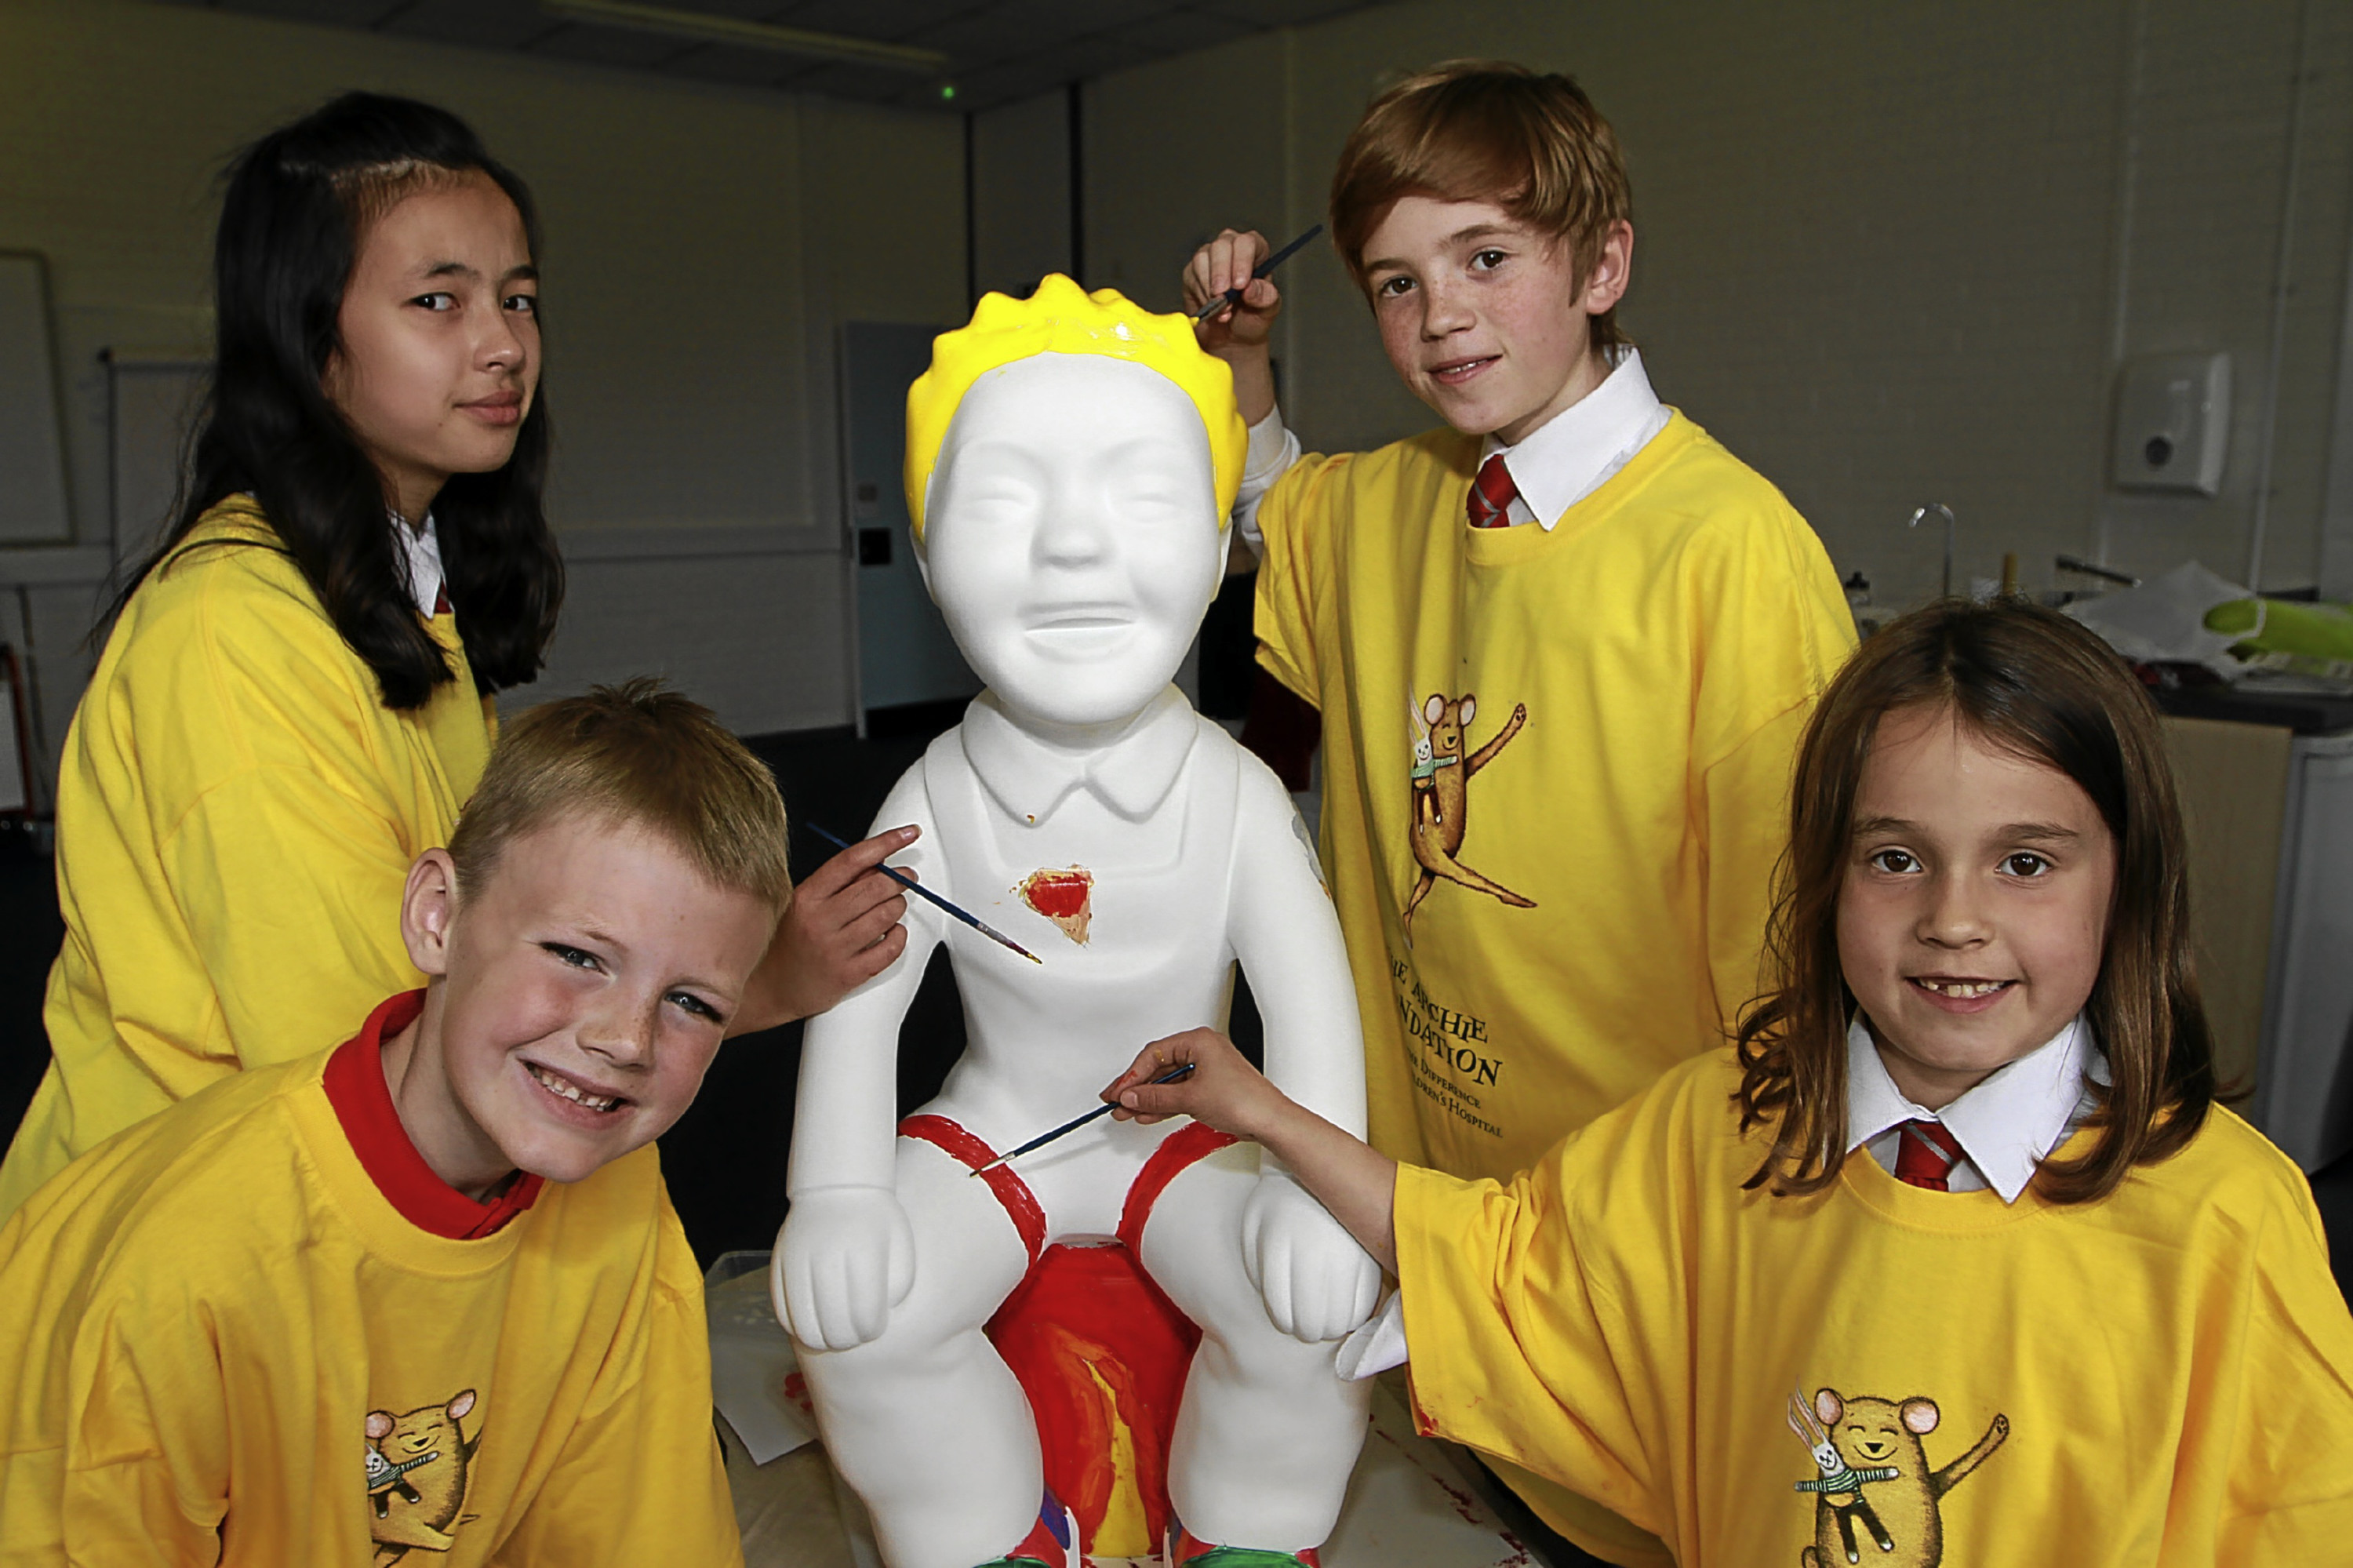 From left, Emily Kelly, 11, Nairn Reynolds, 7, Calum Turpie, 12 and Milly Burns, 7 painting their Oor Wullie sculpture.